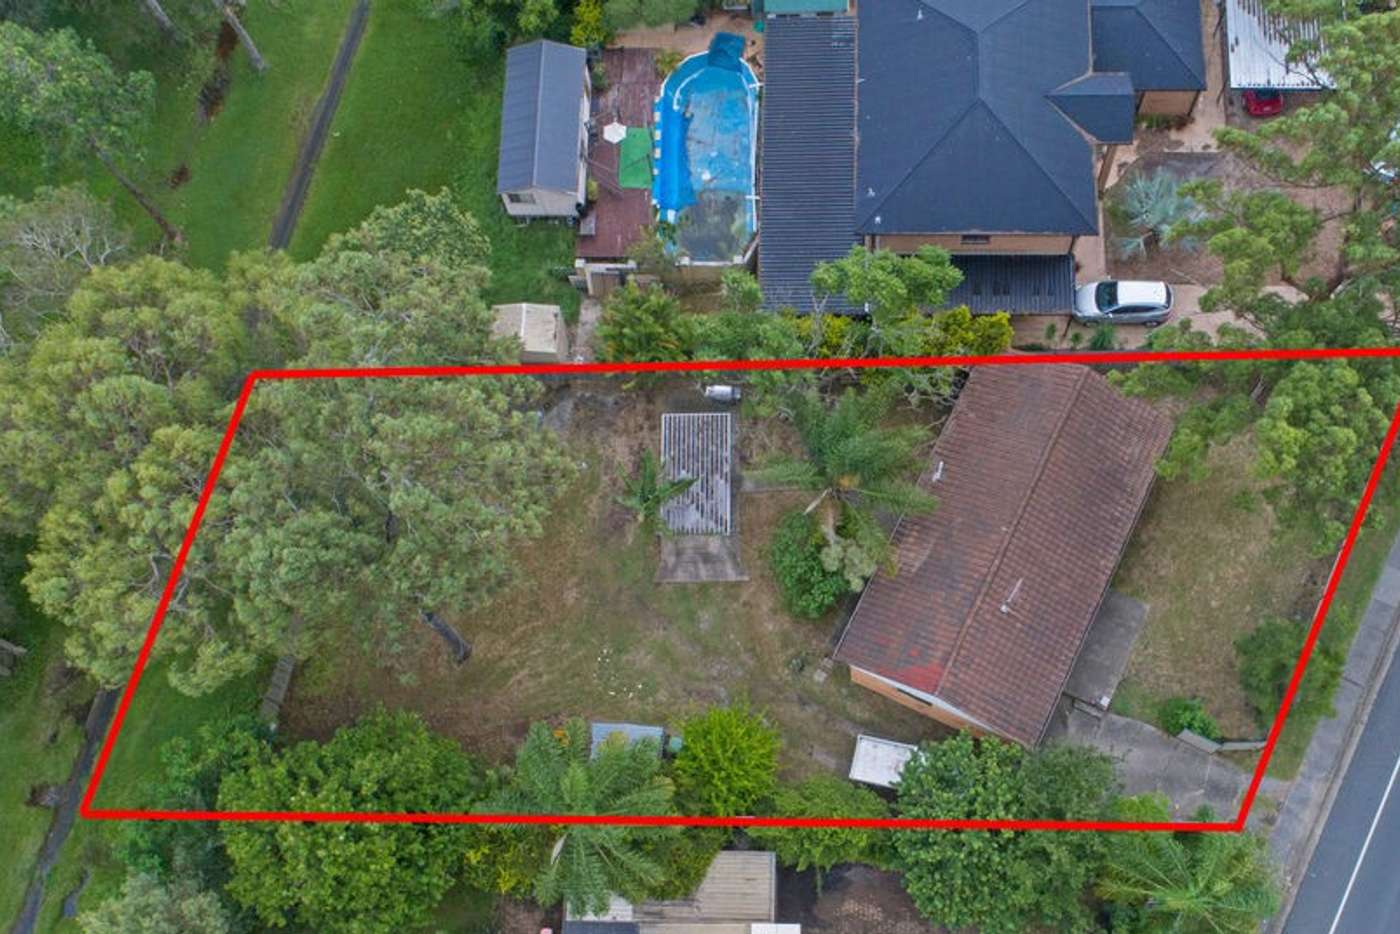 Main view of Homely residentialLand listing, 187 Bryants Road, Loganholme QLD 4129